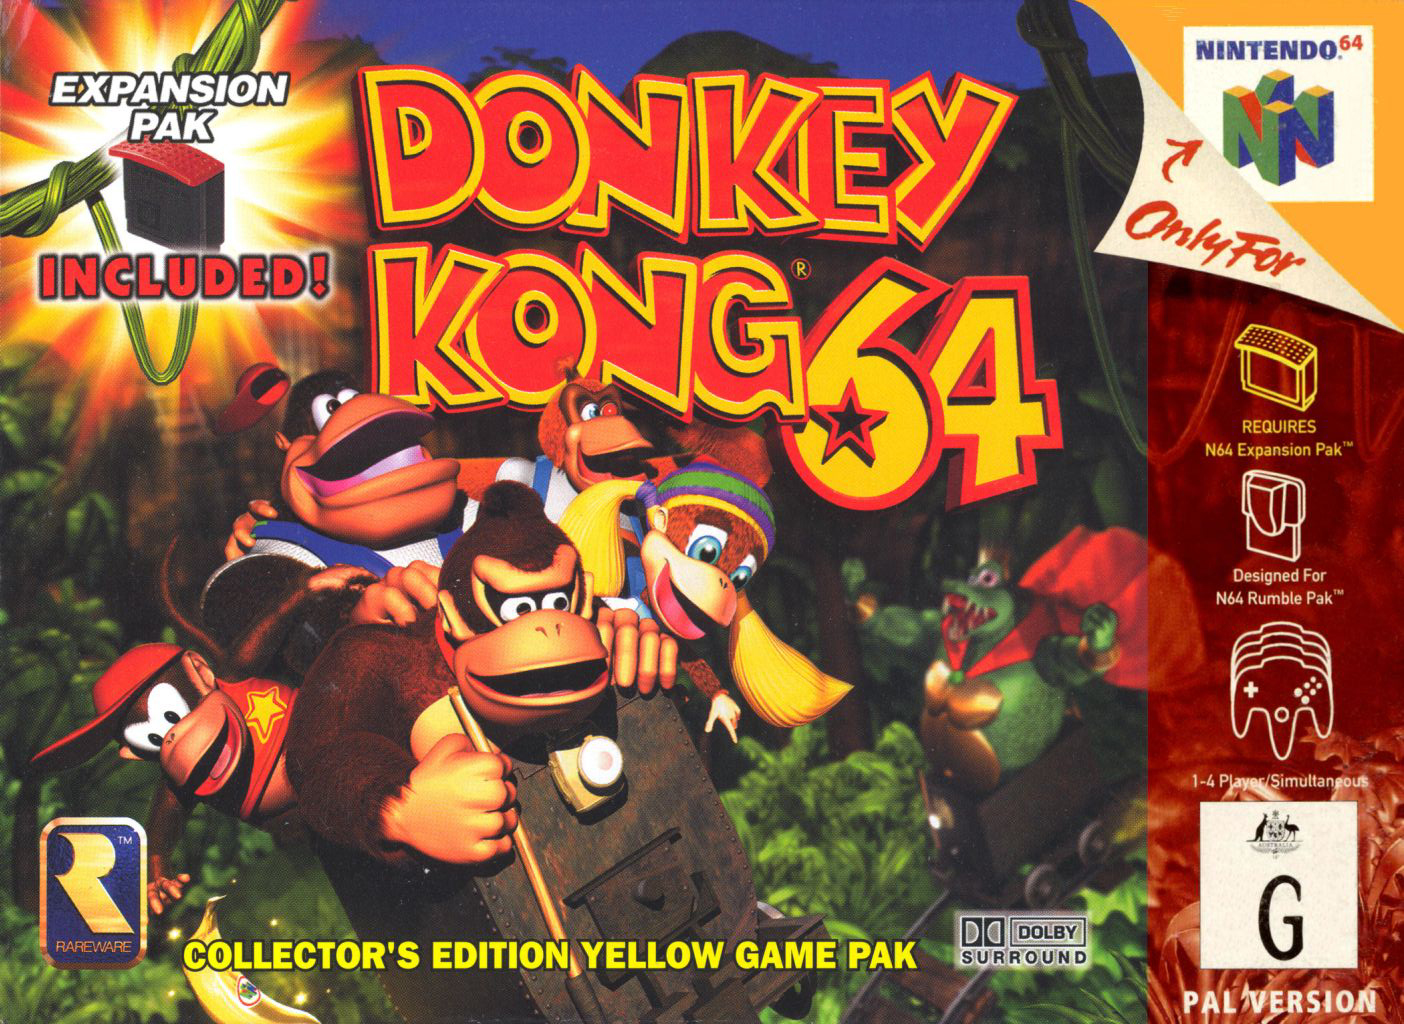 How far are you in Donkey Kong 64?